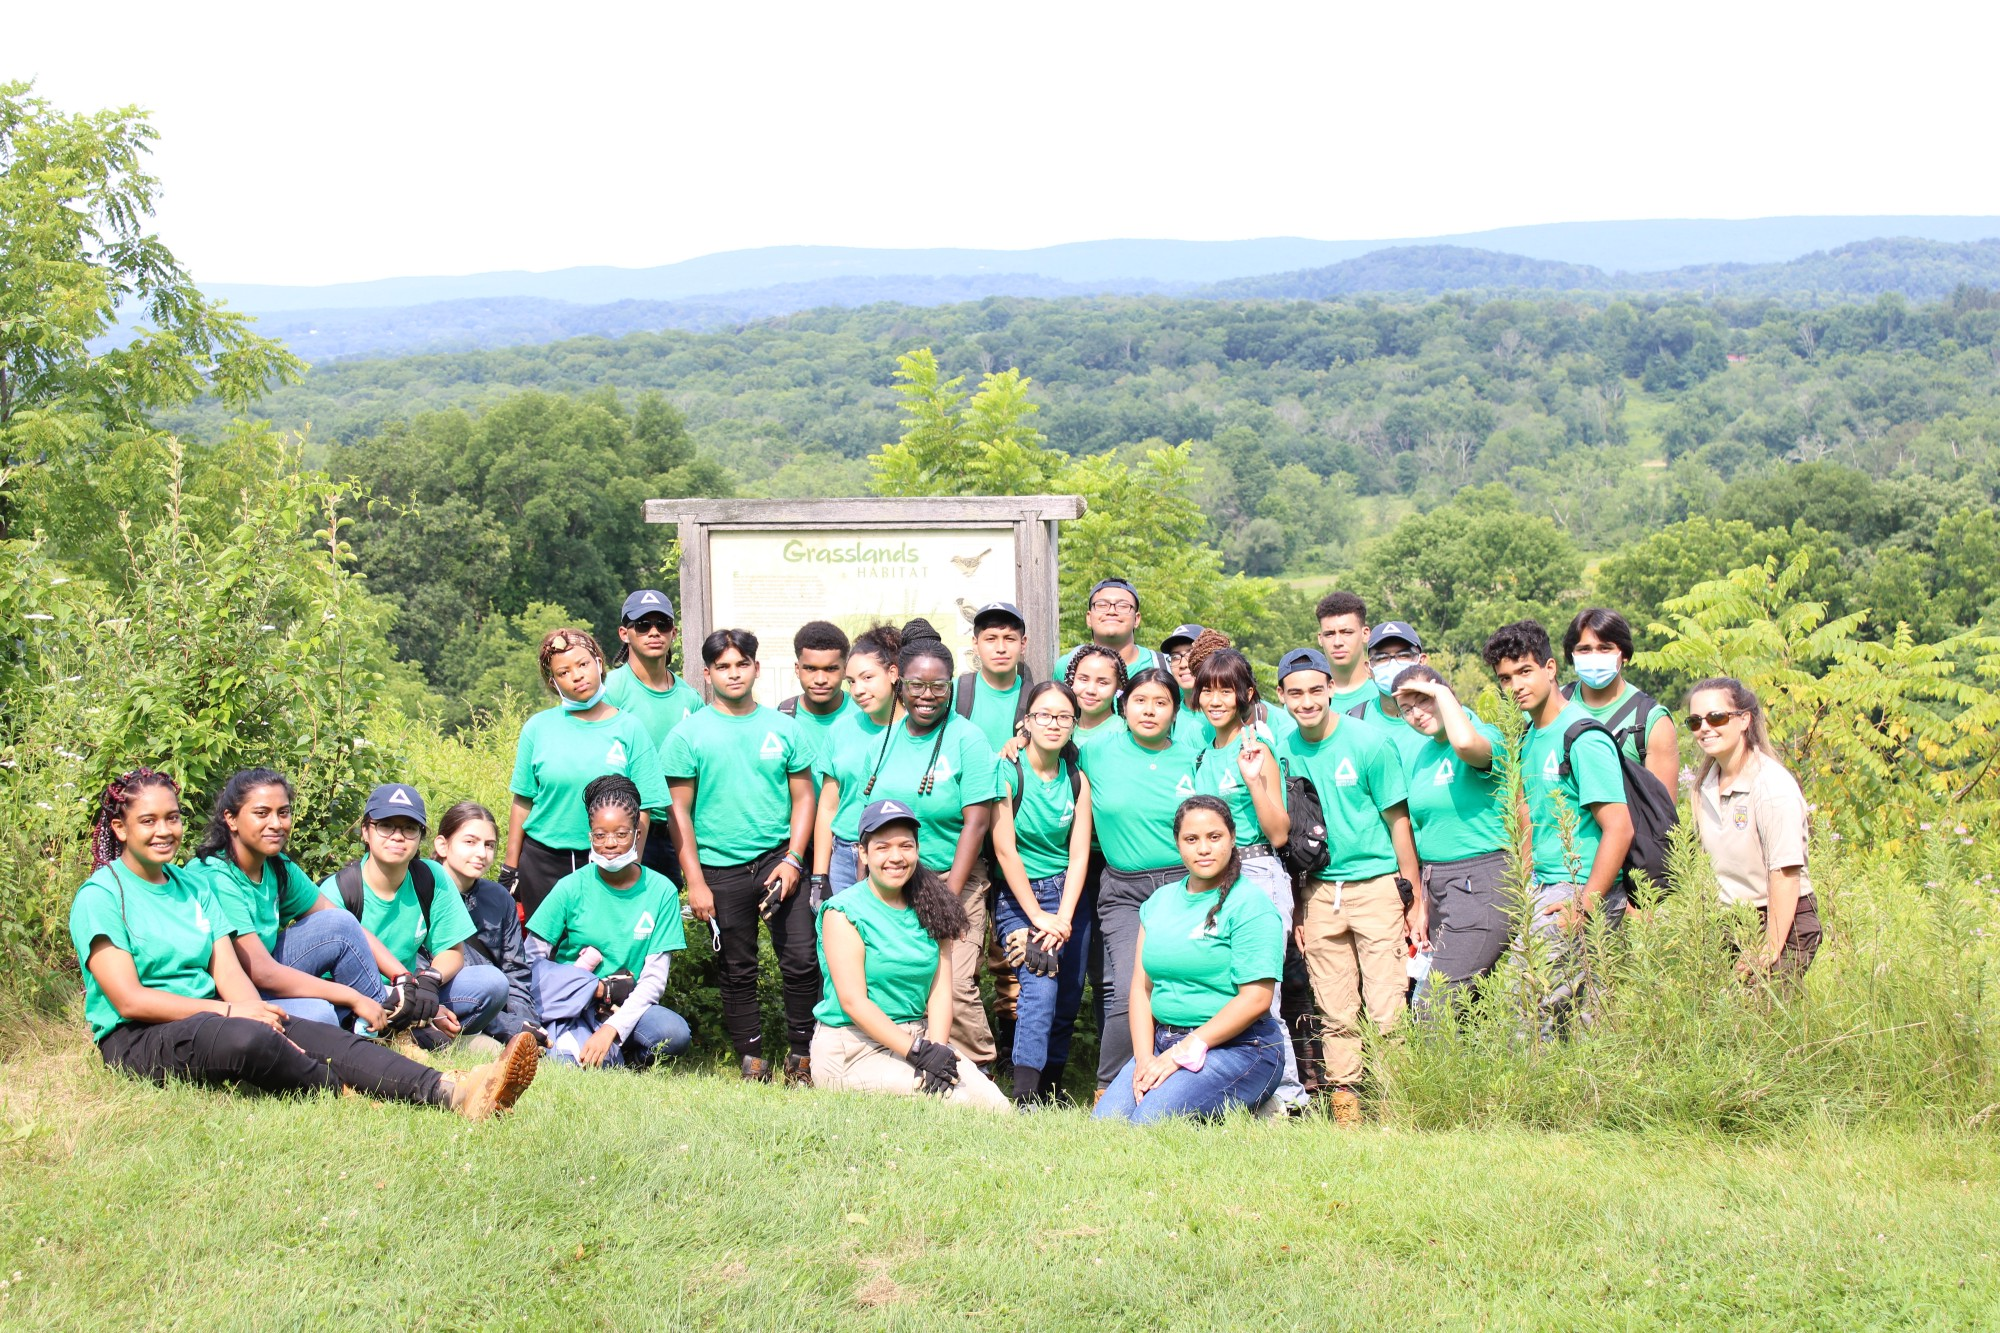 A group photo of the groundwork team wearing green shirts and standing in front a beautiful mountainous overlook